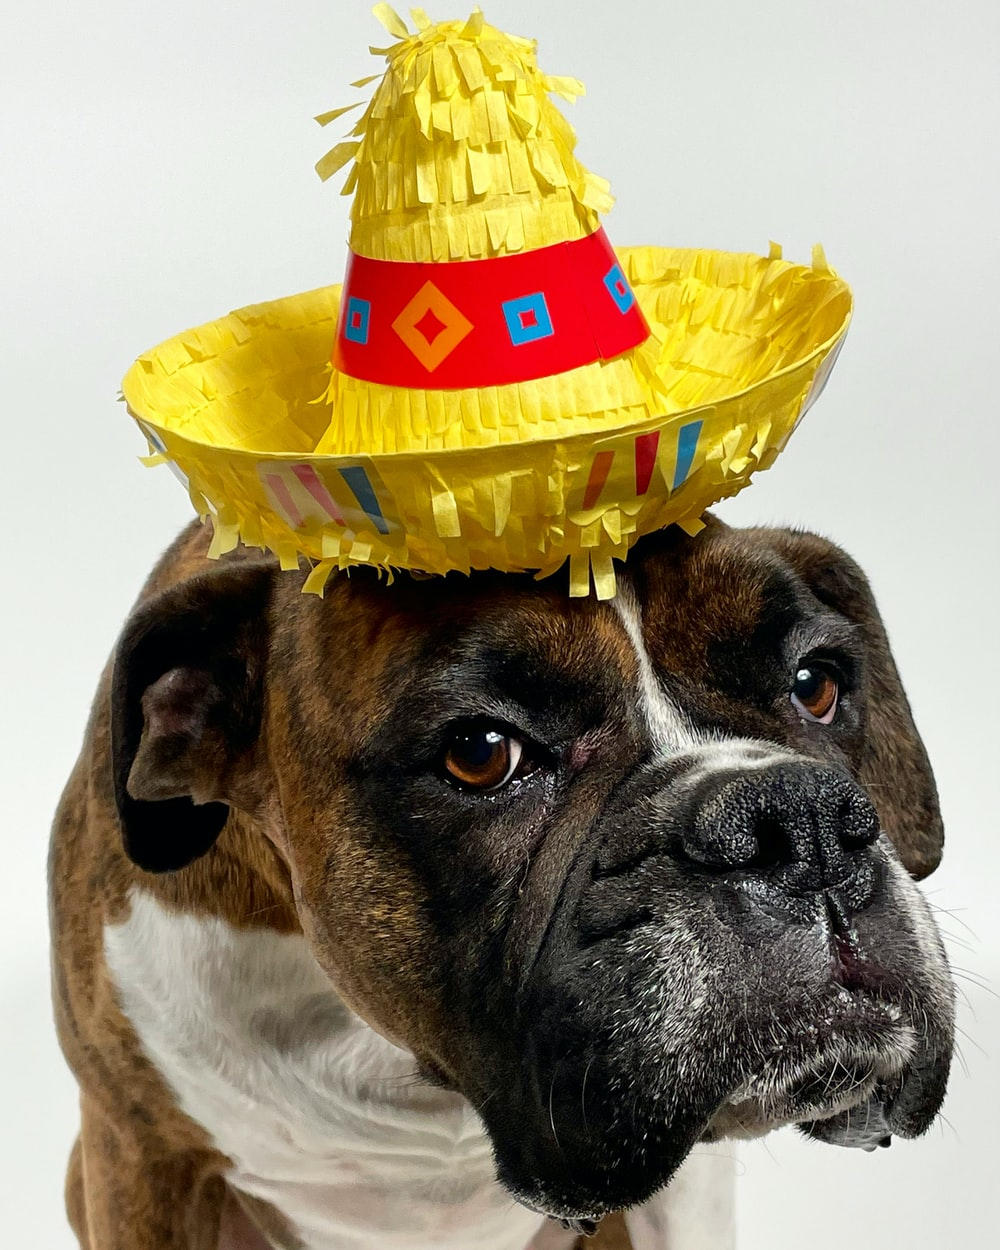 brown and white short coated dog with yellow hat